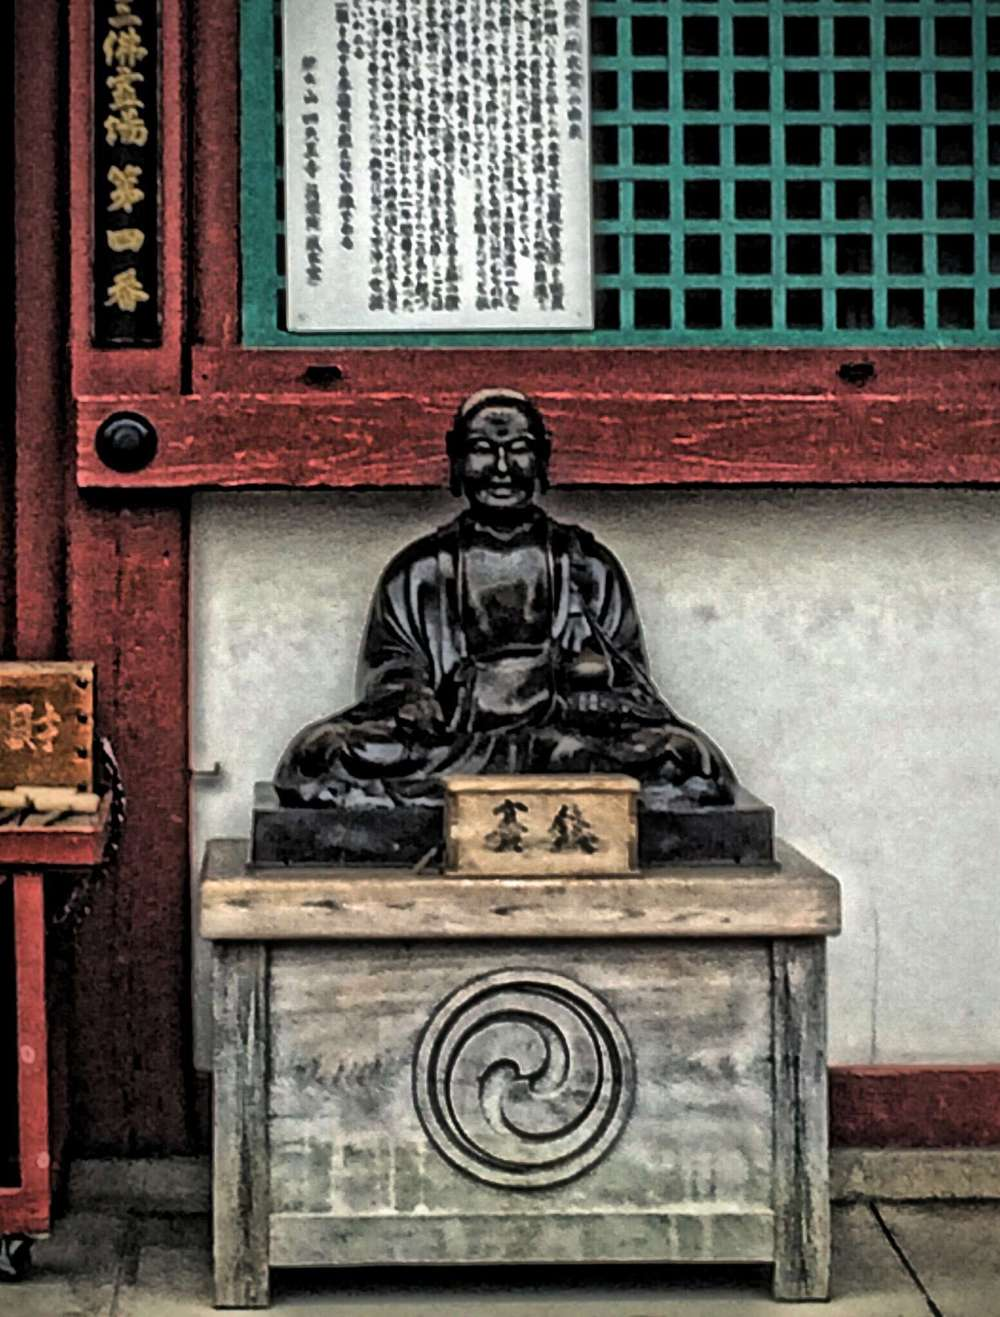 The Lotus Sutra asks, what if we started treating ourselves like as if we were Buddhas? Mythic Yoga Journey to awaken via yoga and story.